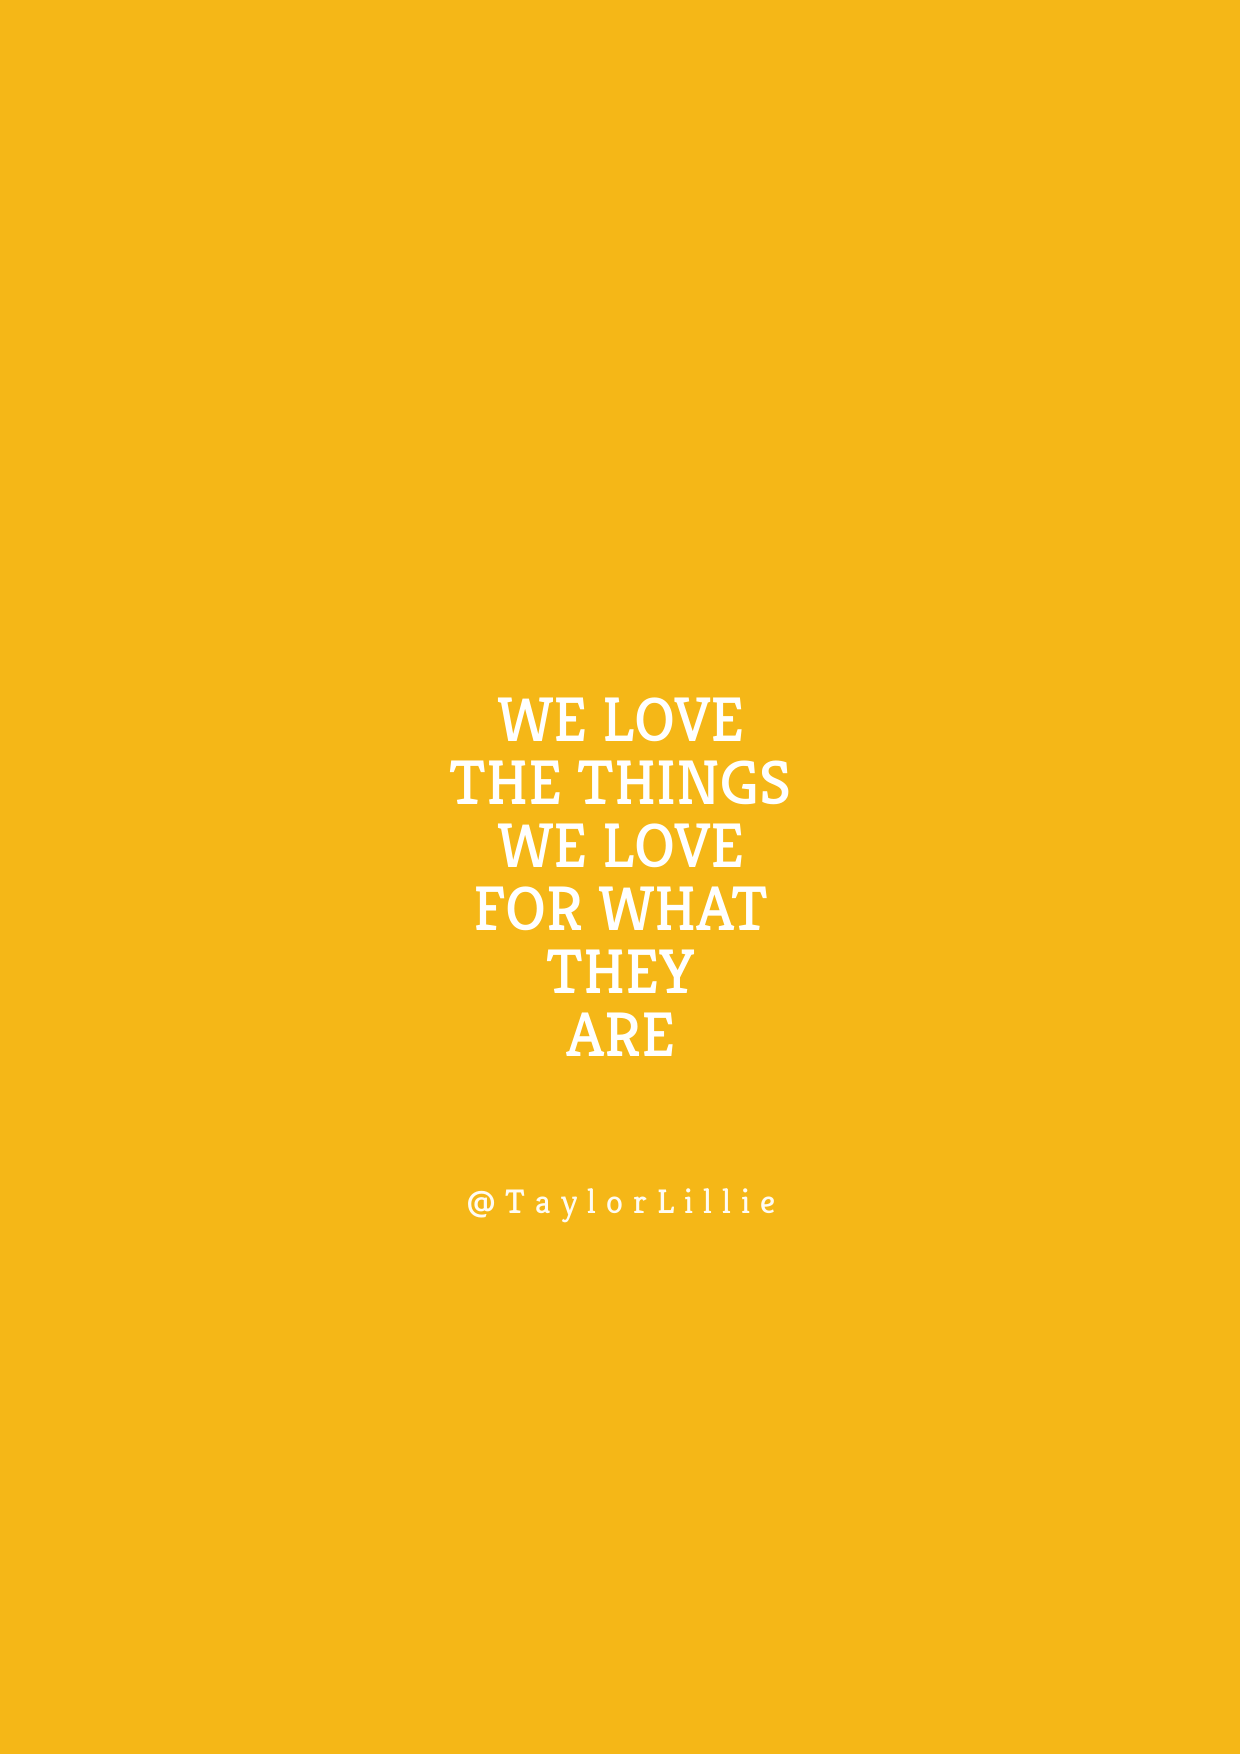 Yellow,                Text,                Font,                Line,                Graphics,                Computer,                Wallpaper,                Brand,                Quote,                Wording,                Saying,                 Free Image